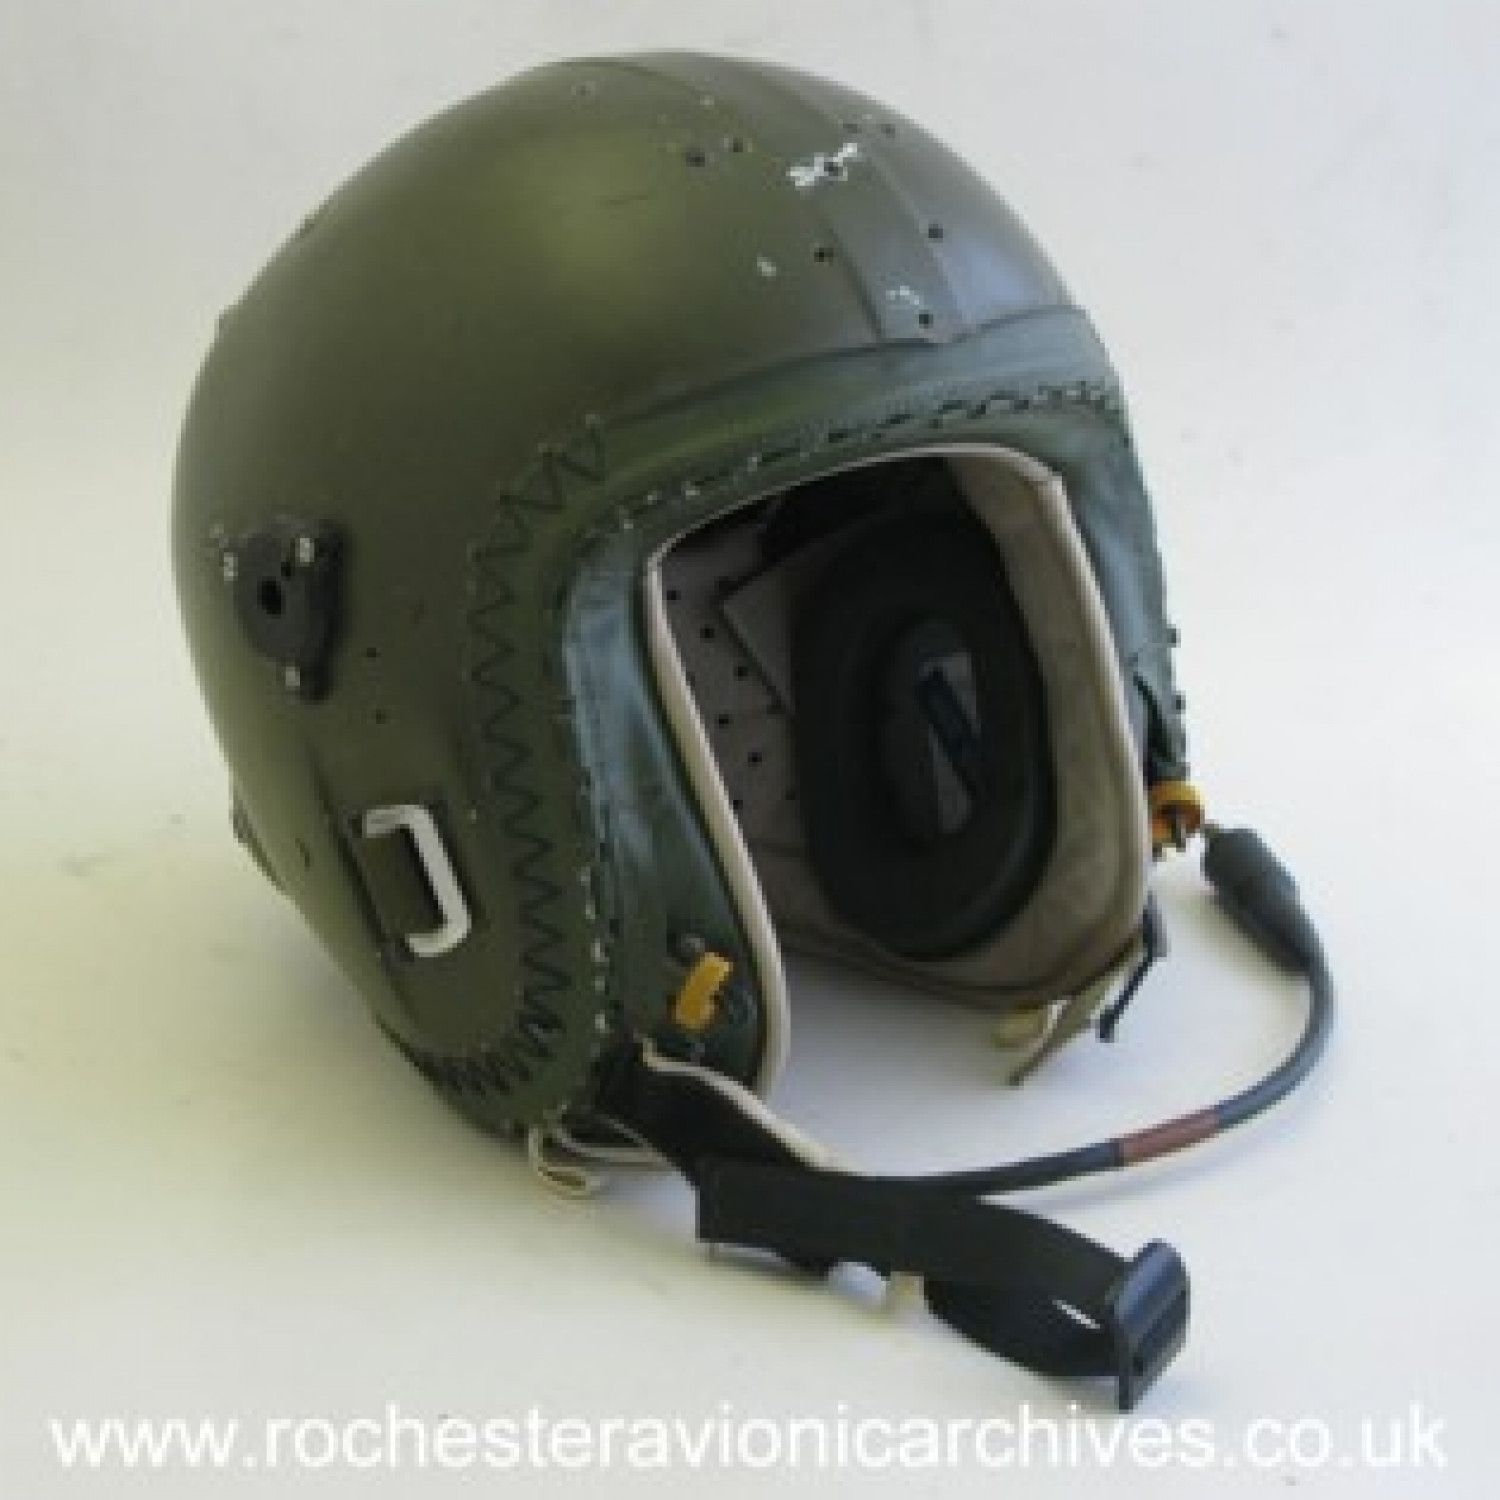 Flying Helmet (Green)